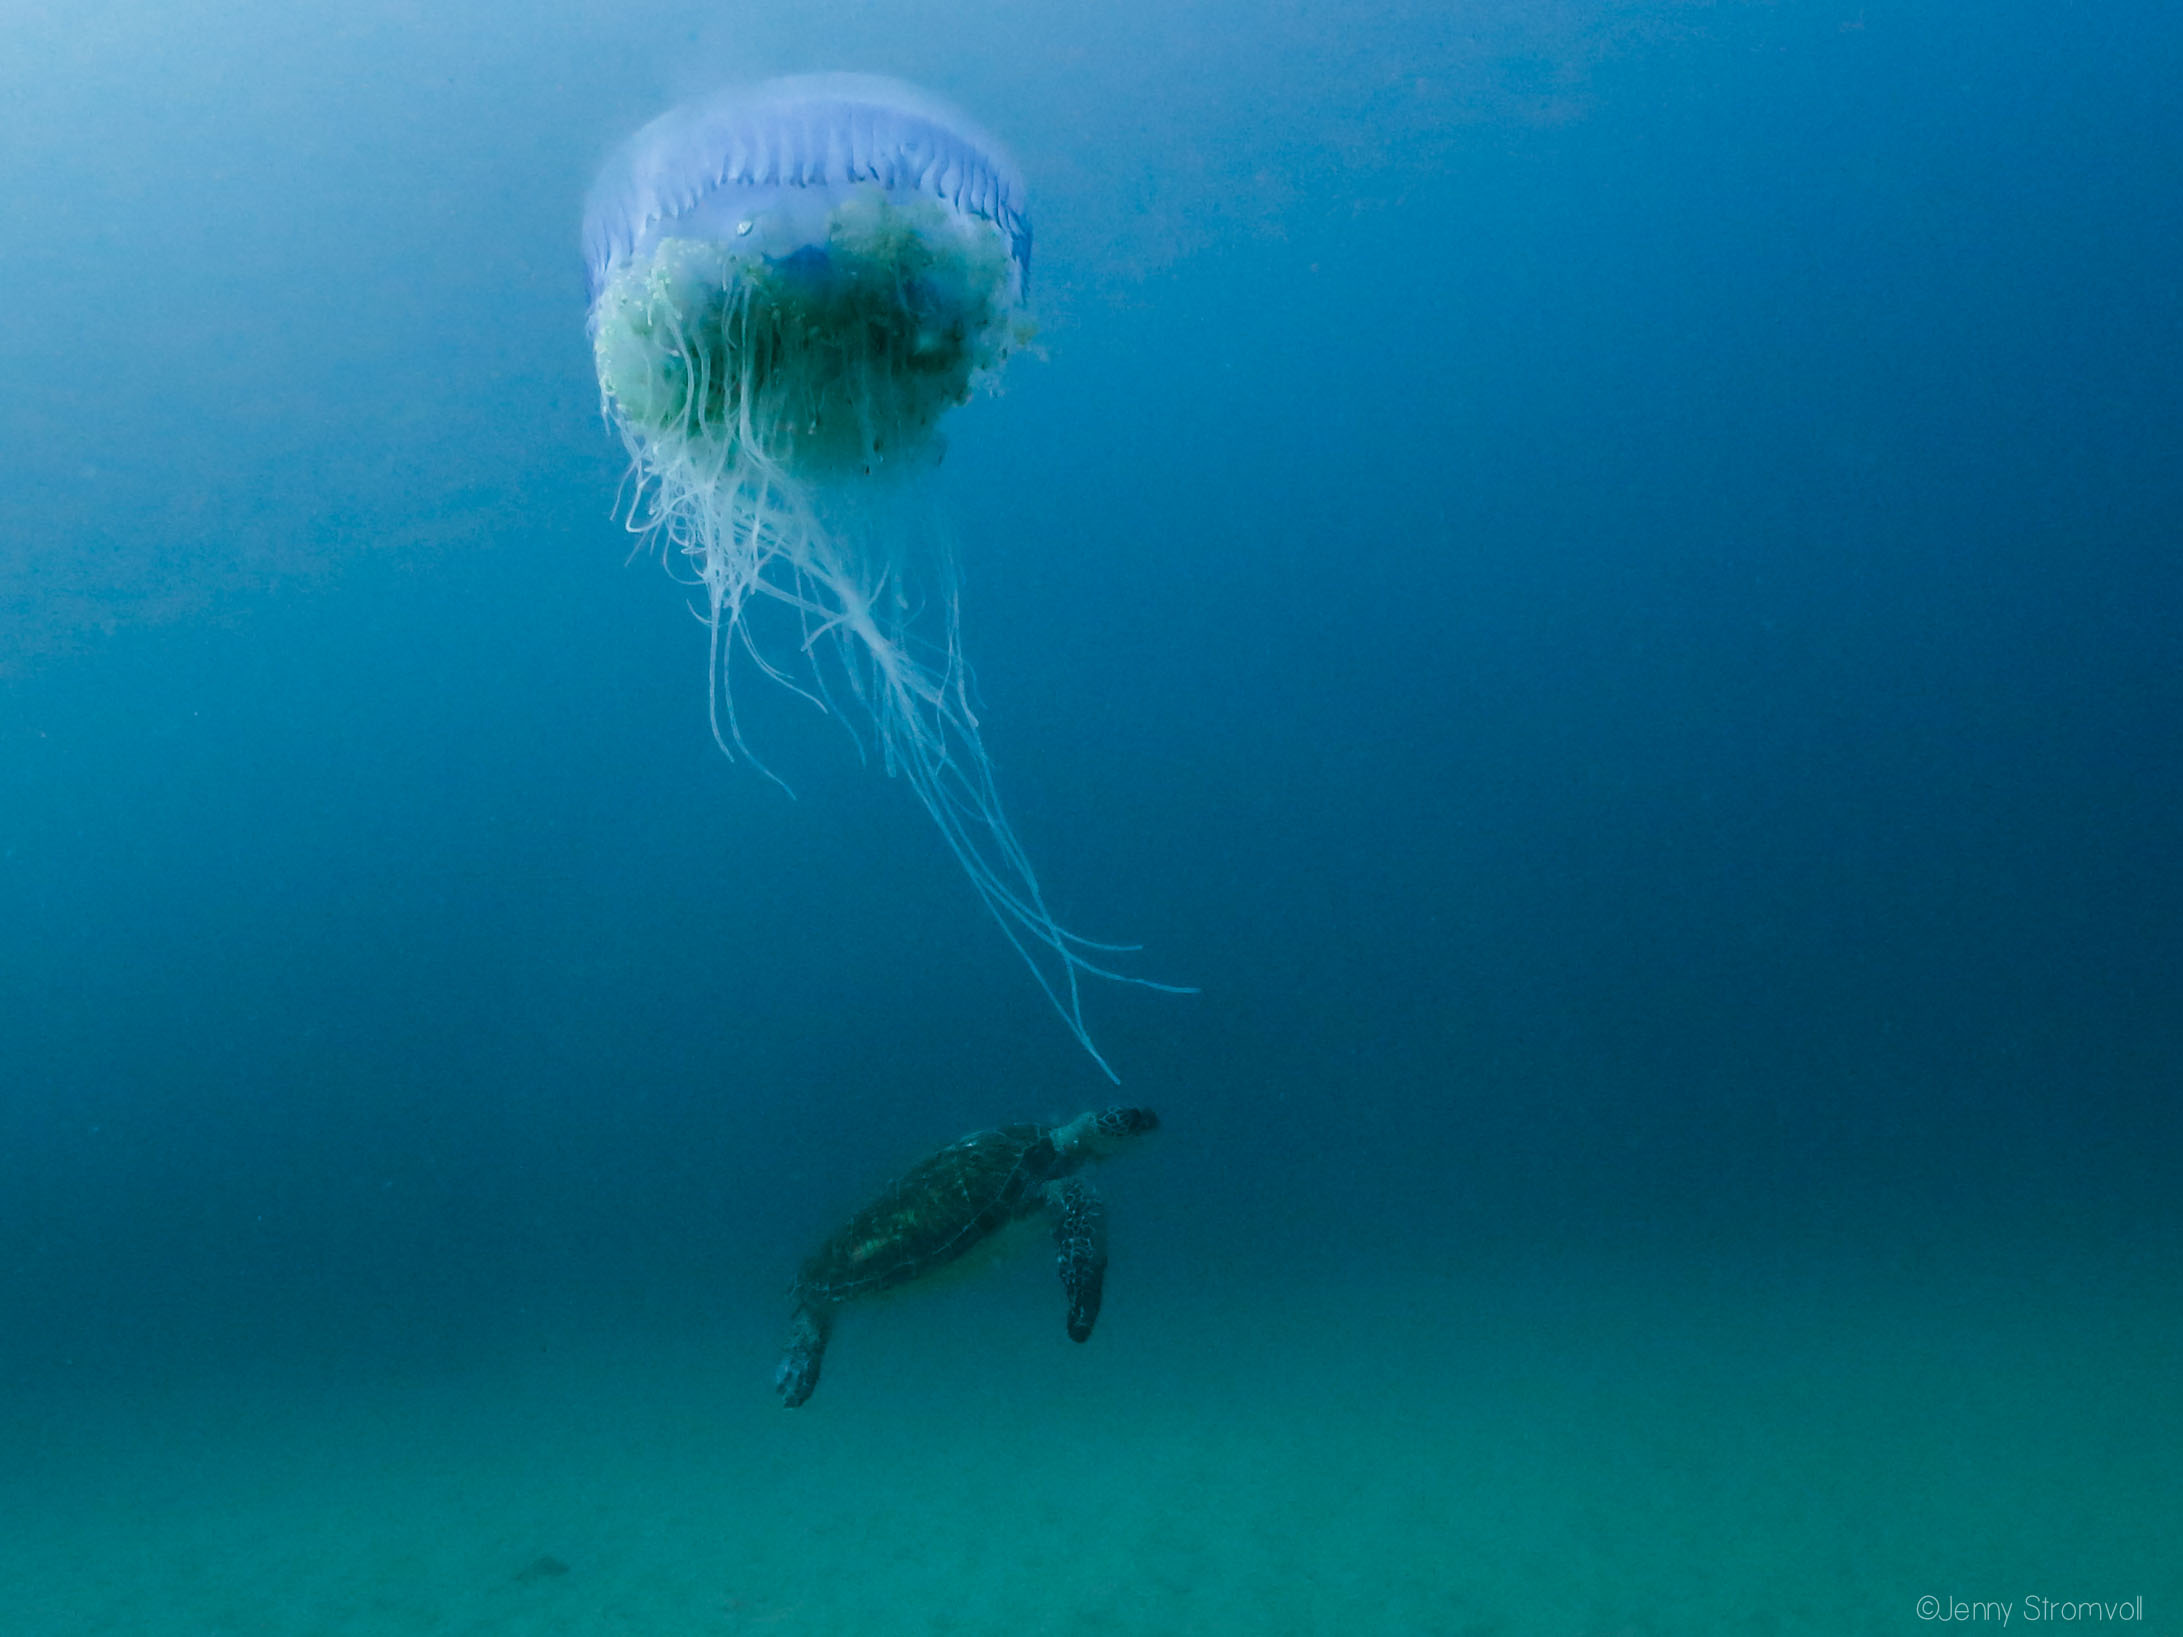 turtles' love for jellyfish puts them at risk from plastic pollution -- floating bags look very much like their jellyfish prey but are indigestible and block their digestive tracts with predictably bad results